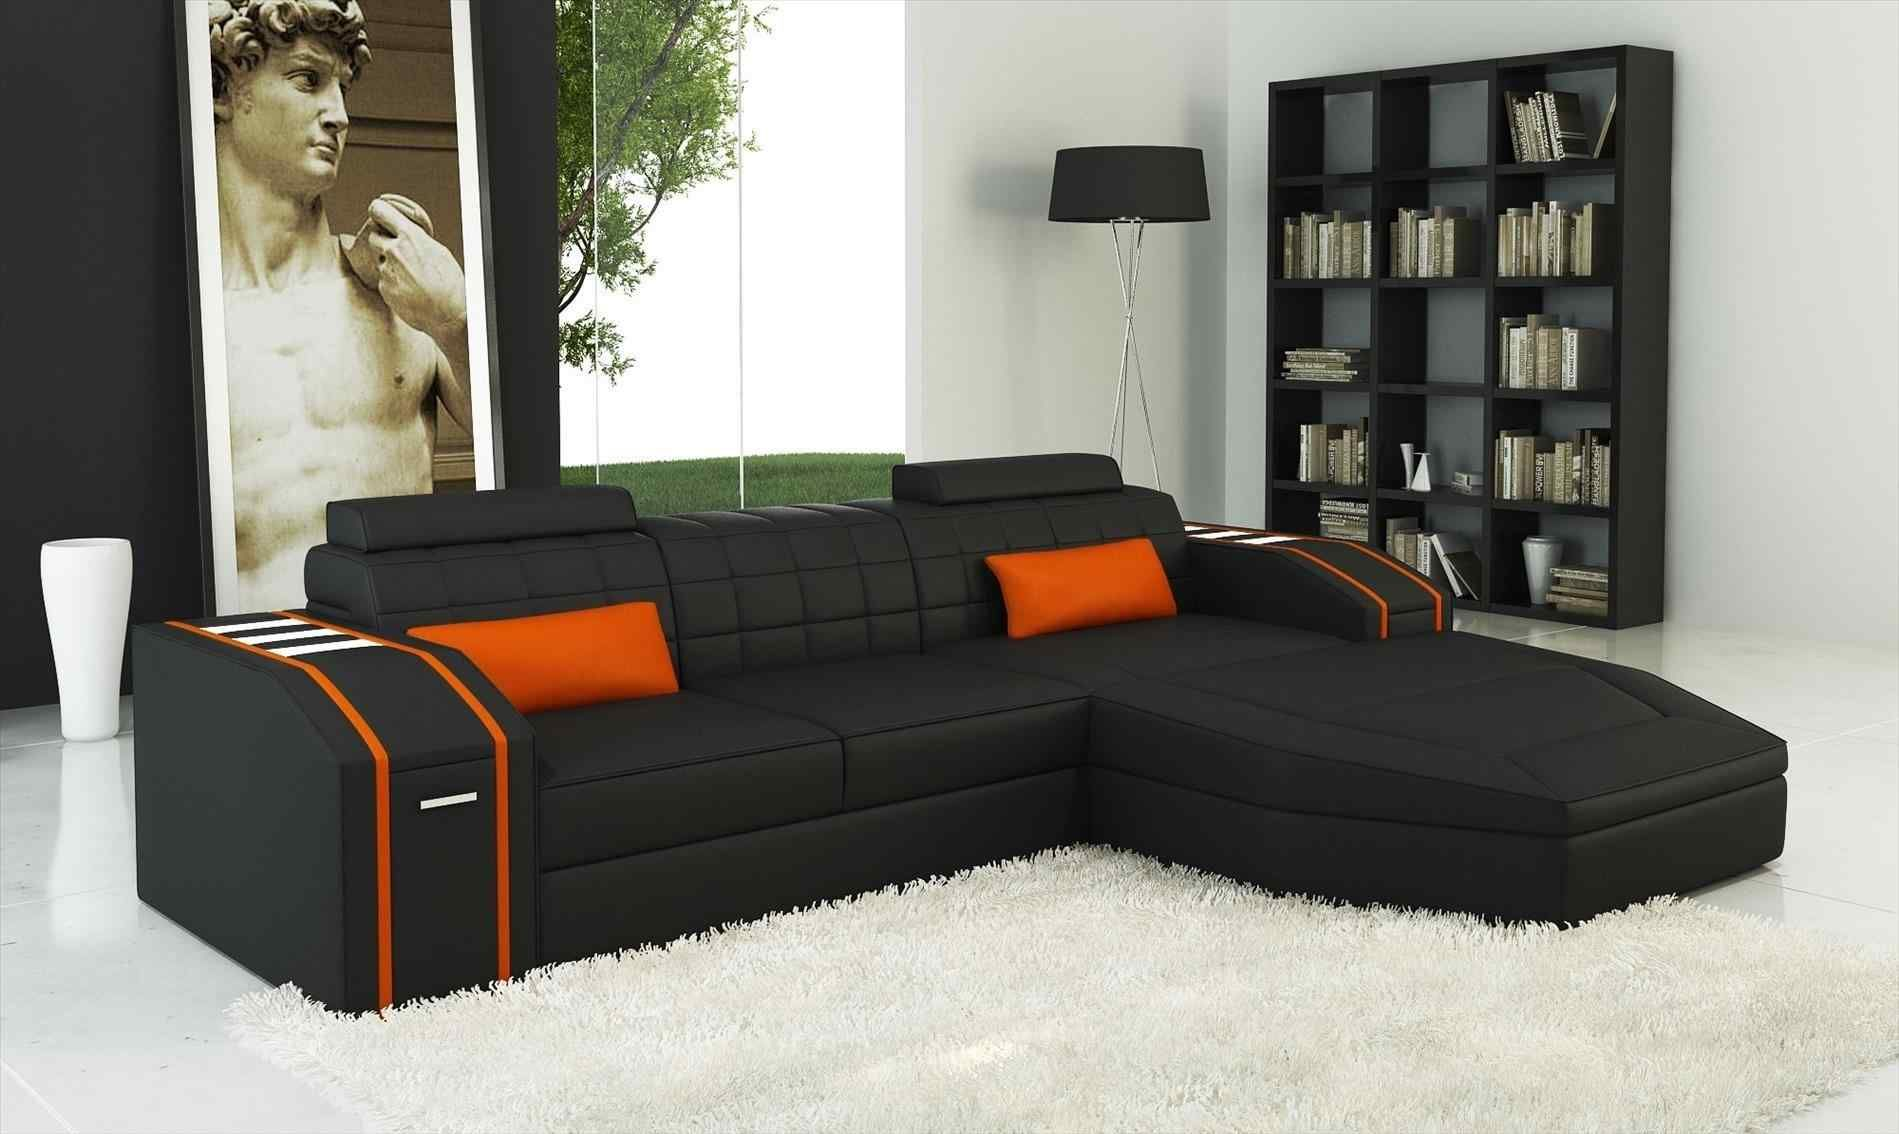 Inexpensive Sectional Sofas For Sale Modern Australia Cheap Discount Contemporary S Tourdecarrollcom Sleeper Sofa